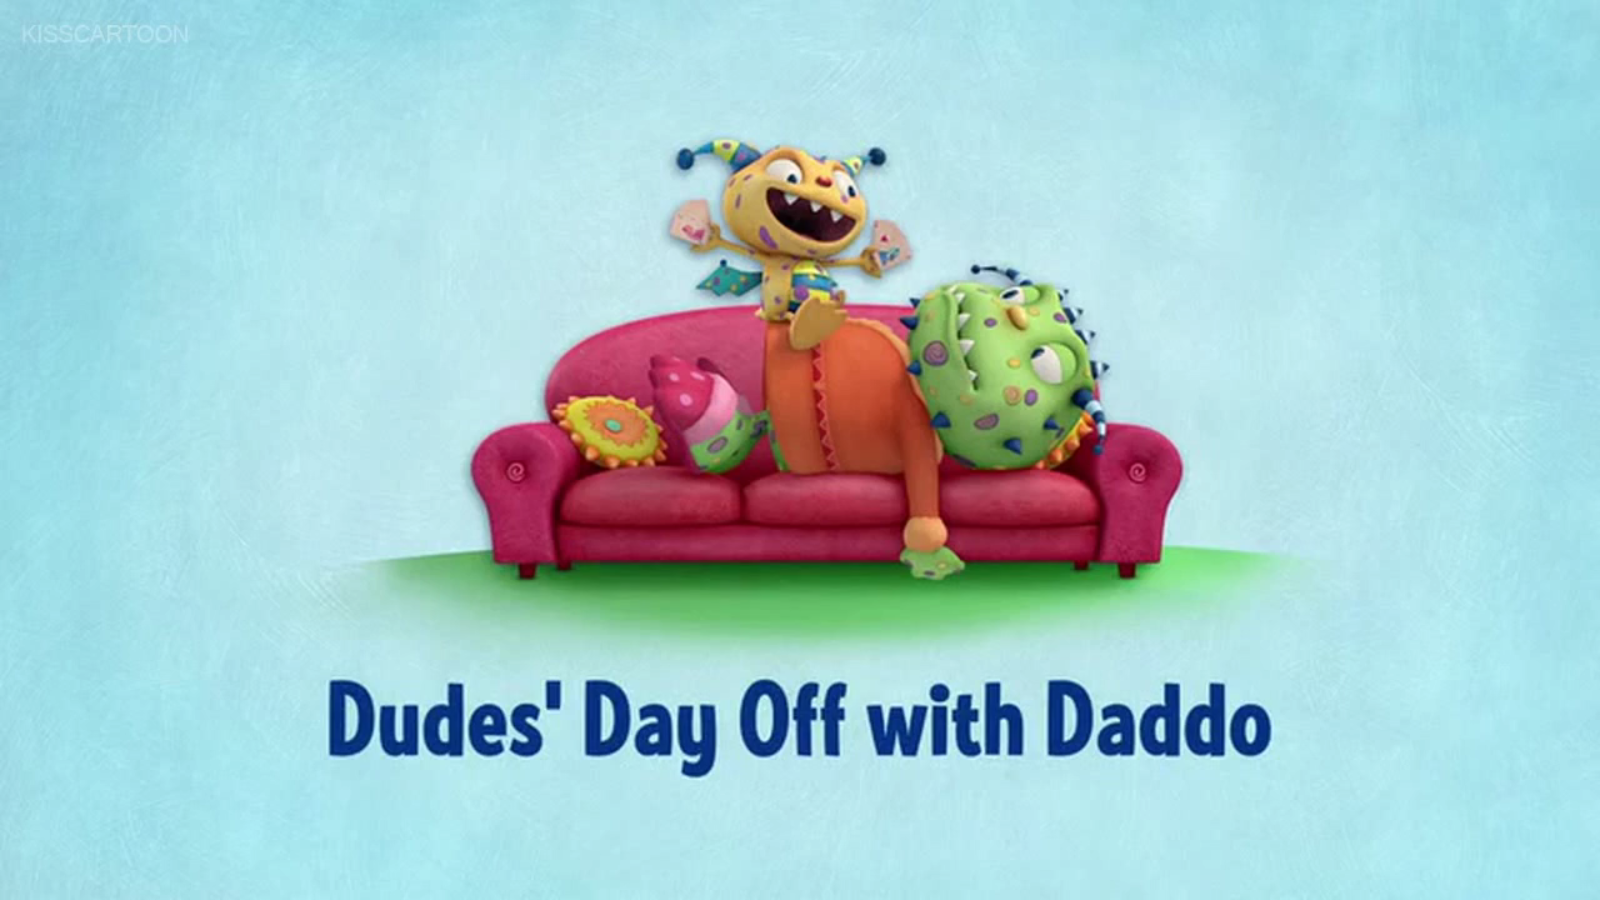 Dudes' Day Off with Daddo